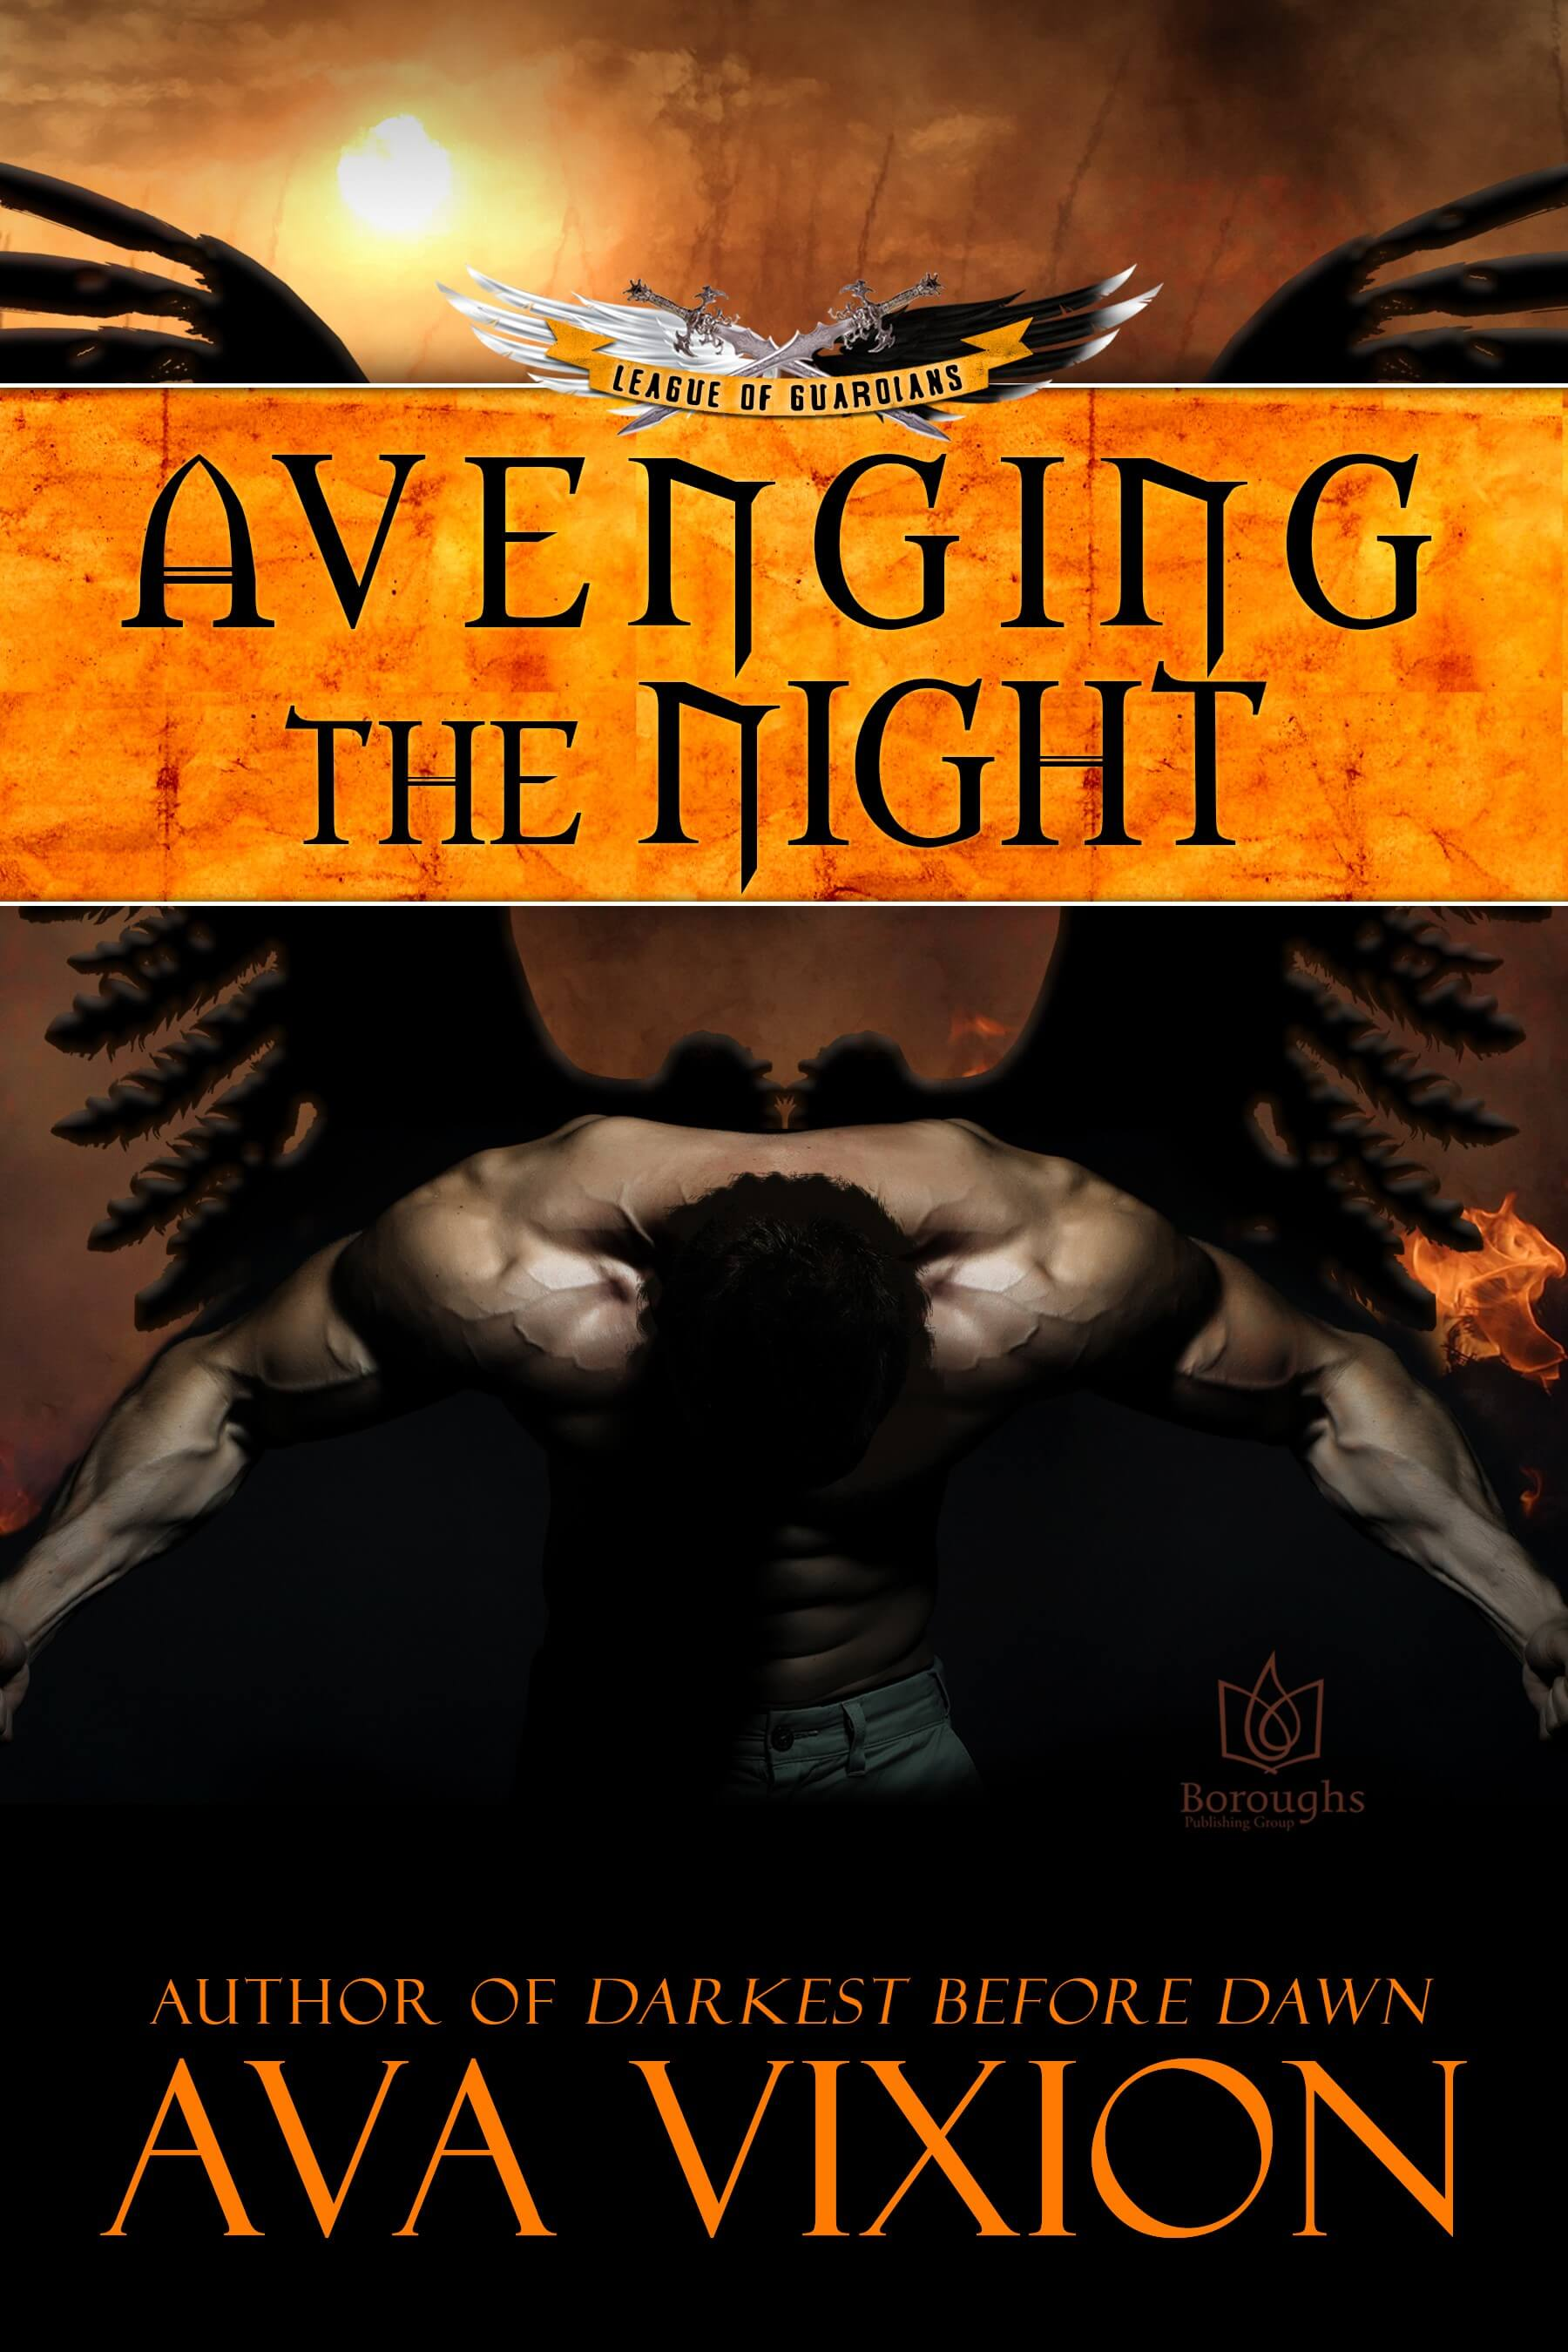 Ava Vixion's Avenging the Night – League of Guardians Series #boroughspubgrp #avavixion